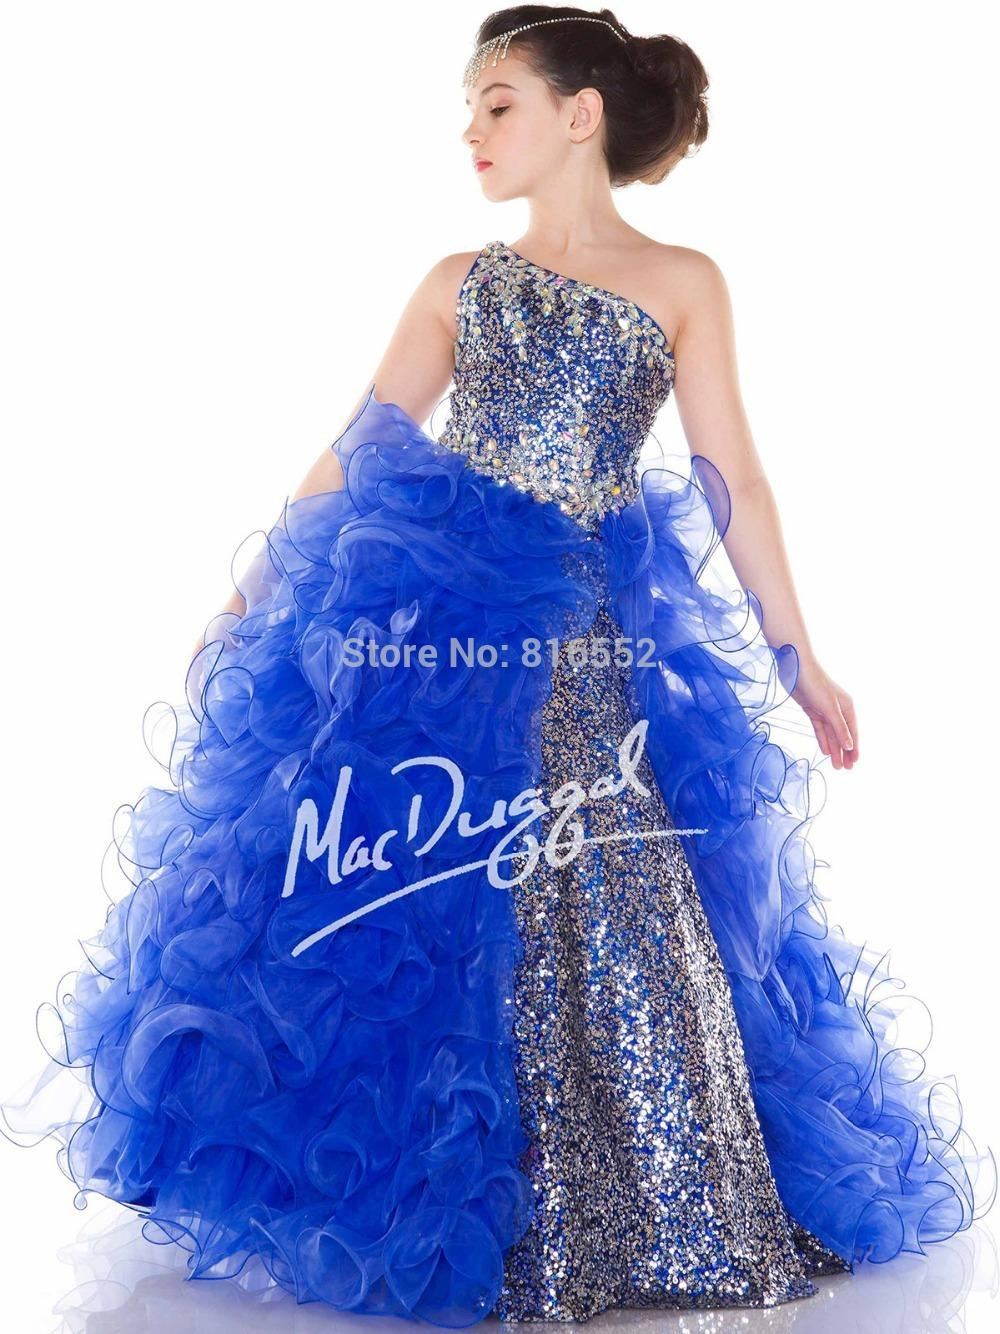 Cheap Flower Girl Dresses With Blue Find Flower Girl Dresses With